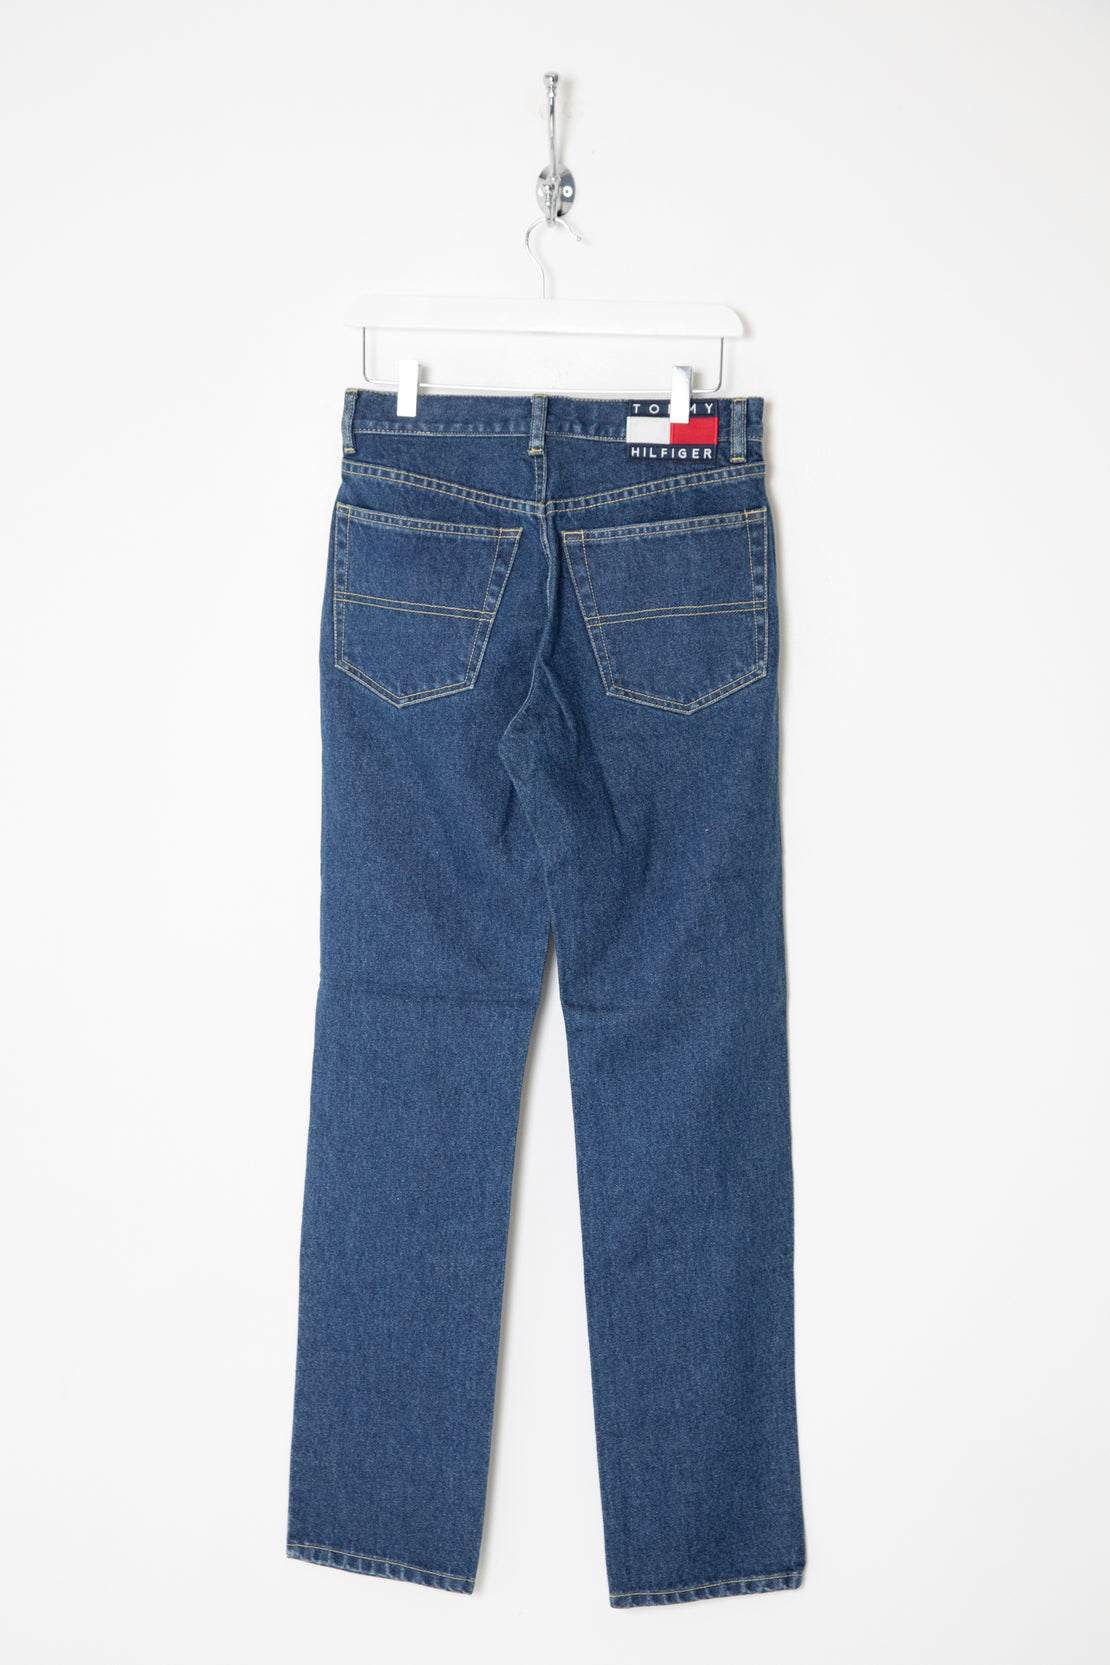 Women's Tommy Hilfiger Denim Jeans (W26)